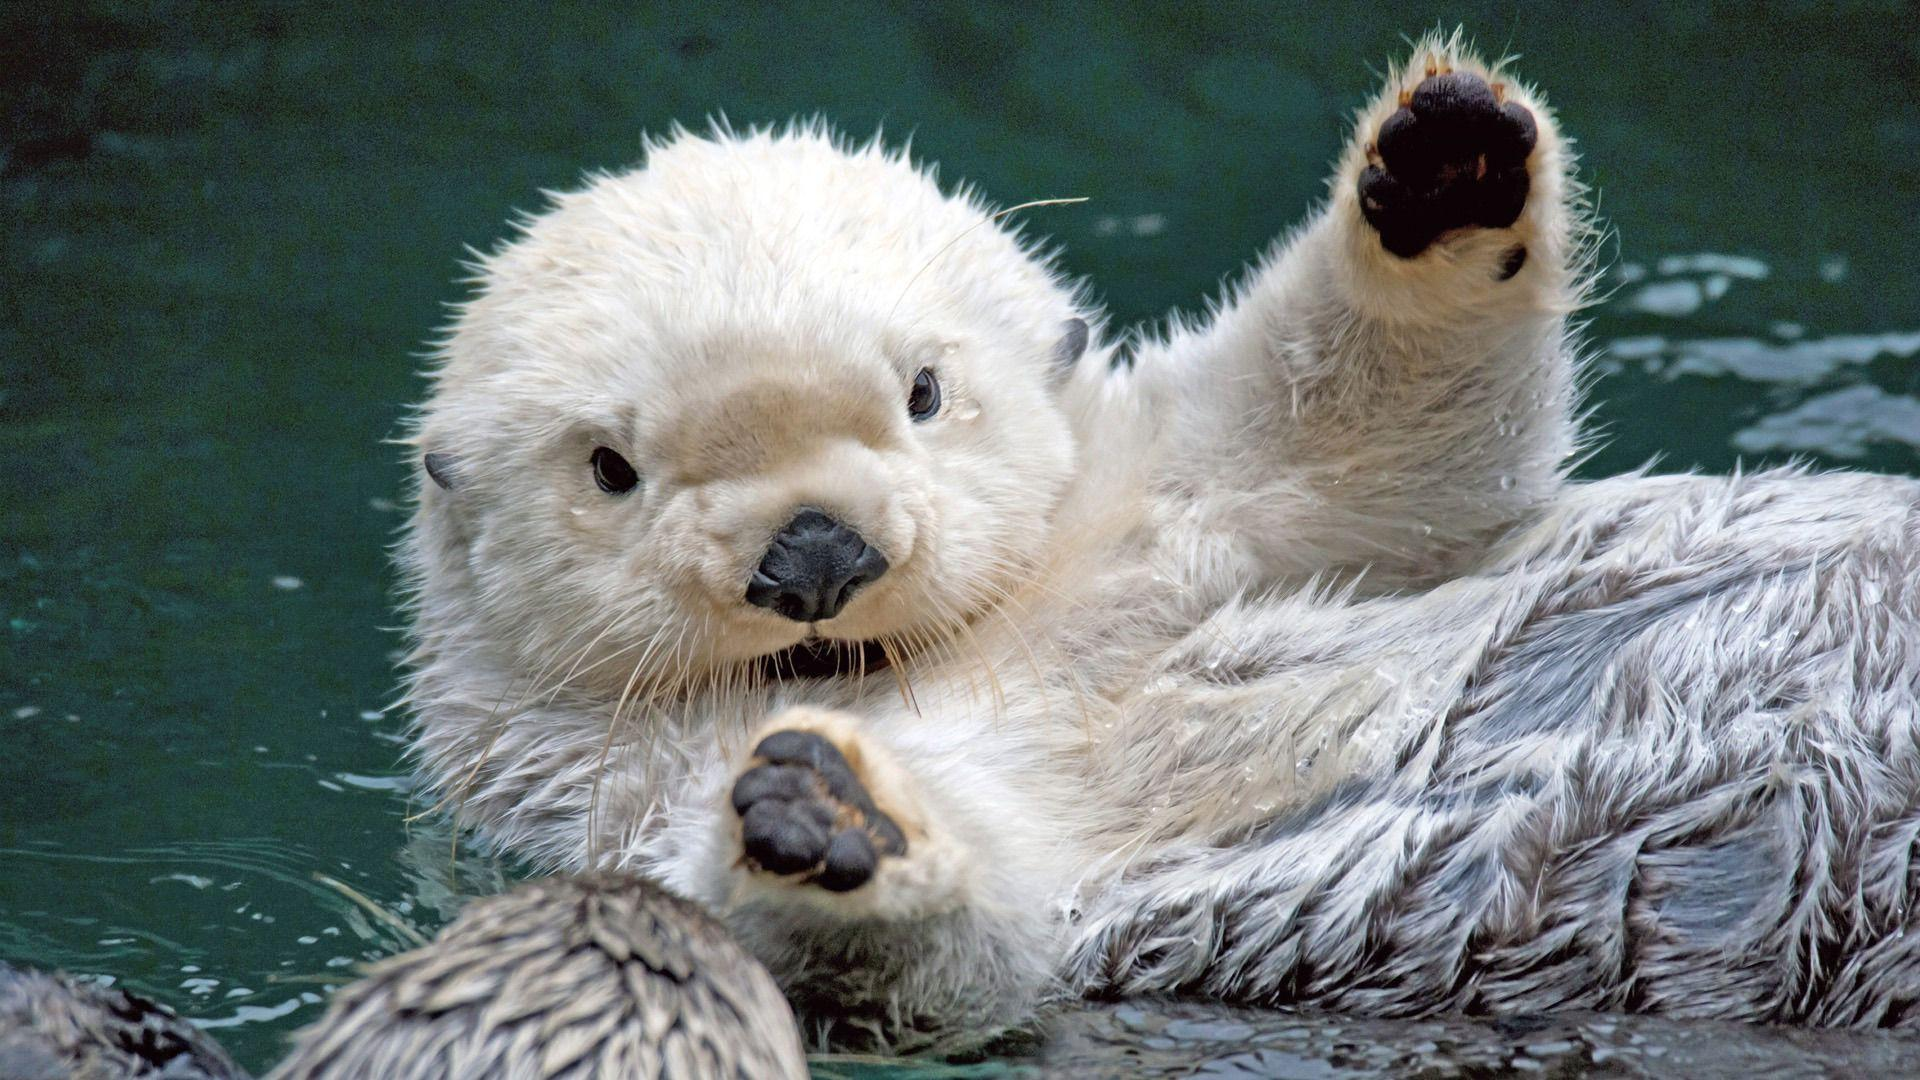 Sea Otter HD Wallpapers